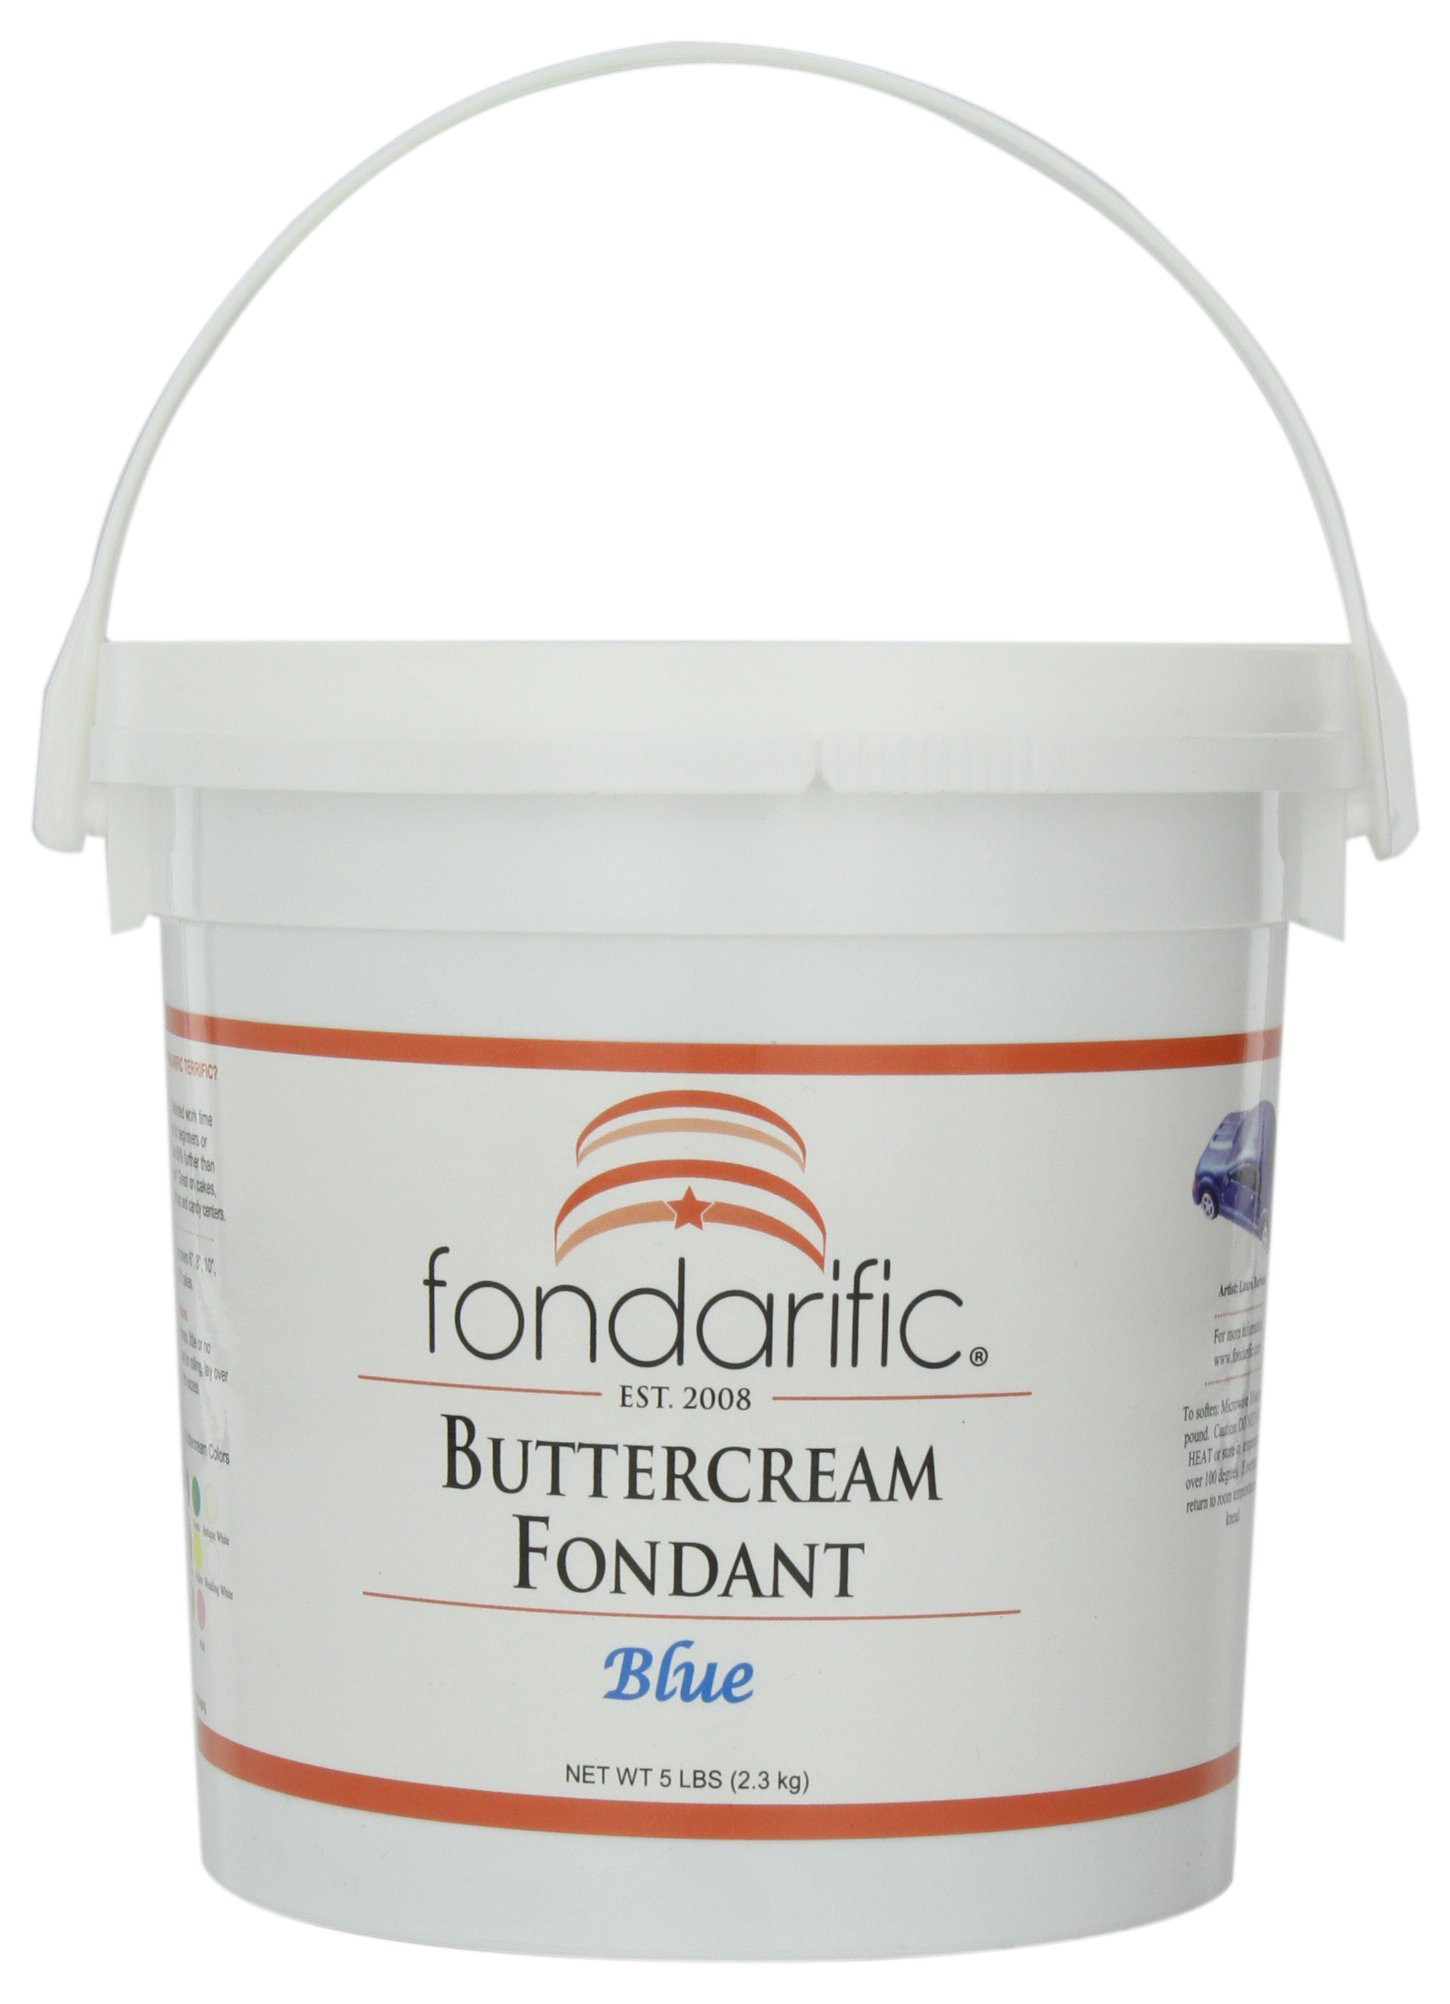 Fondarific Buttercream Blue Fondant, 5-Pounds by Fondarific (Image #1)